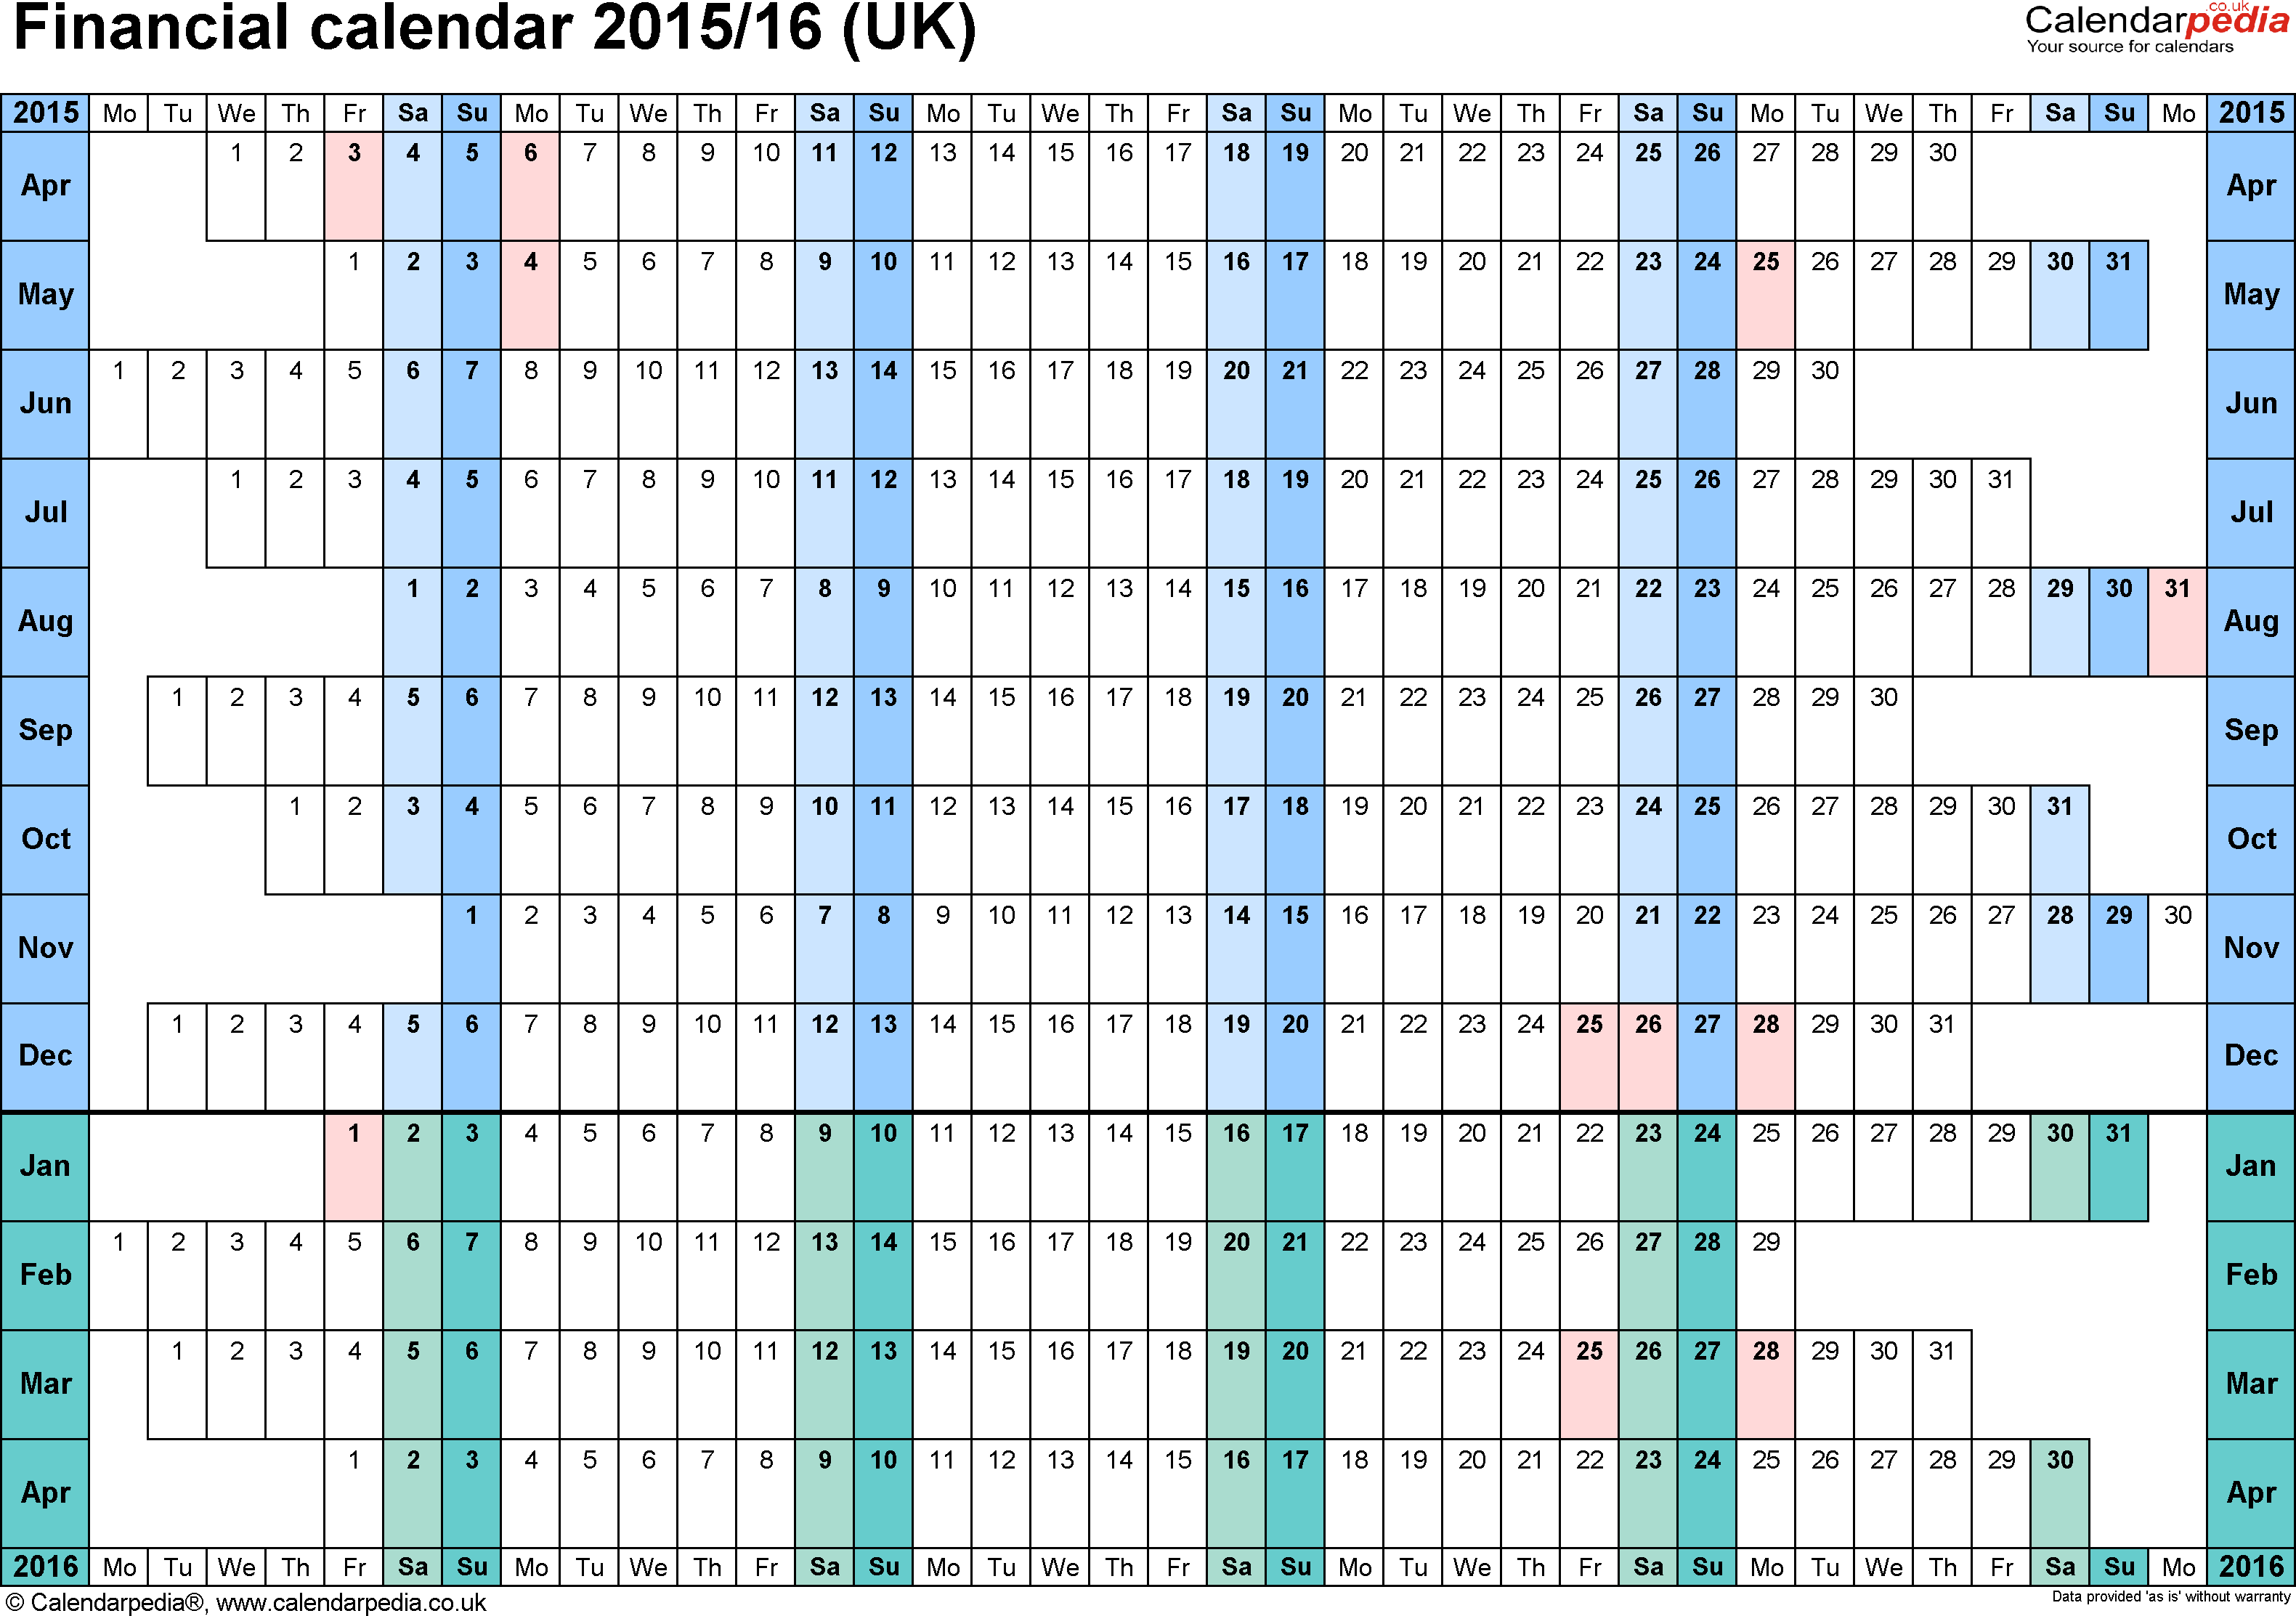 Template 3: PDF template for financial calendar 2015/2016 (landscape orientation, linear, days aligned, 1 page, A4)